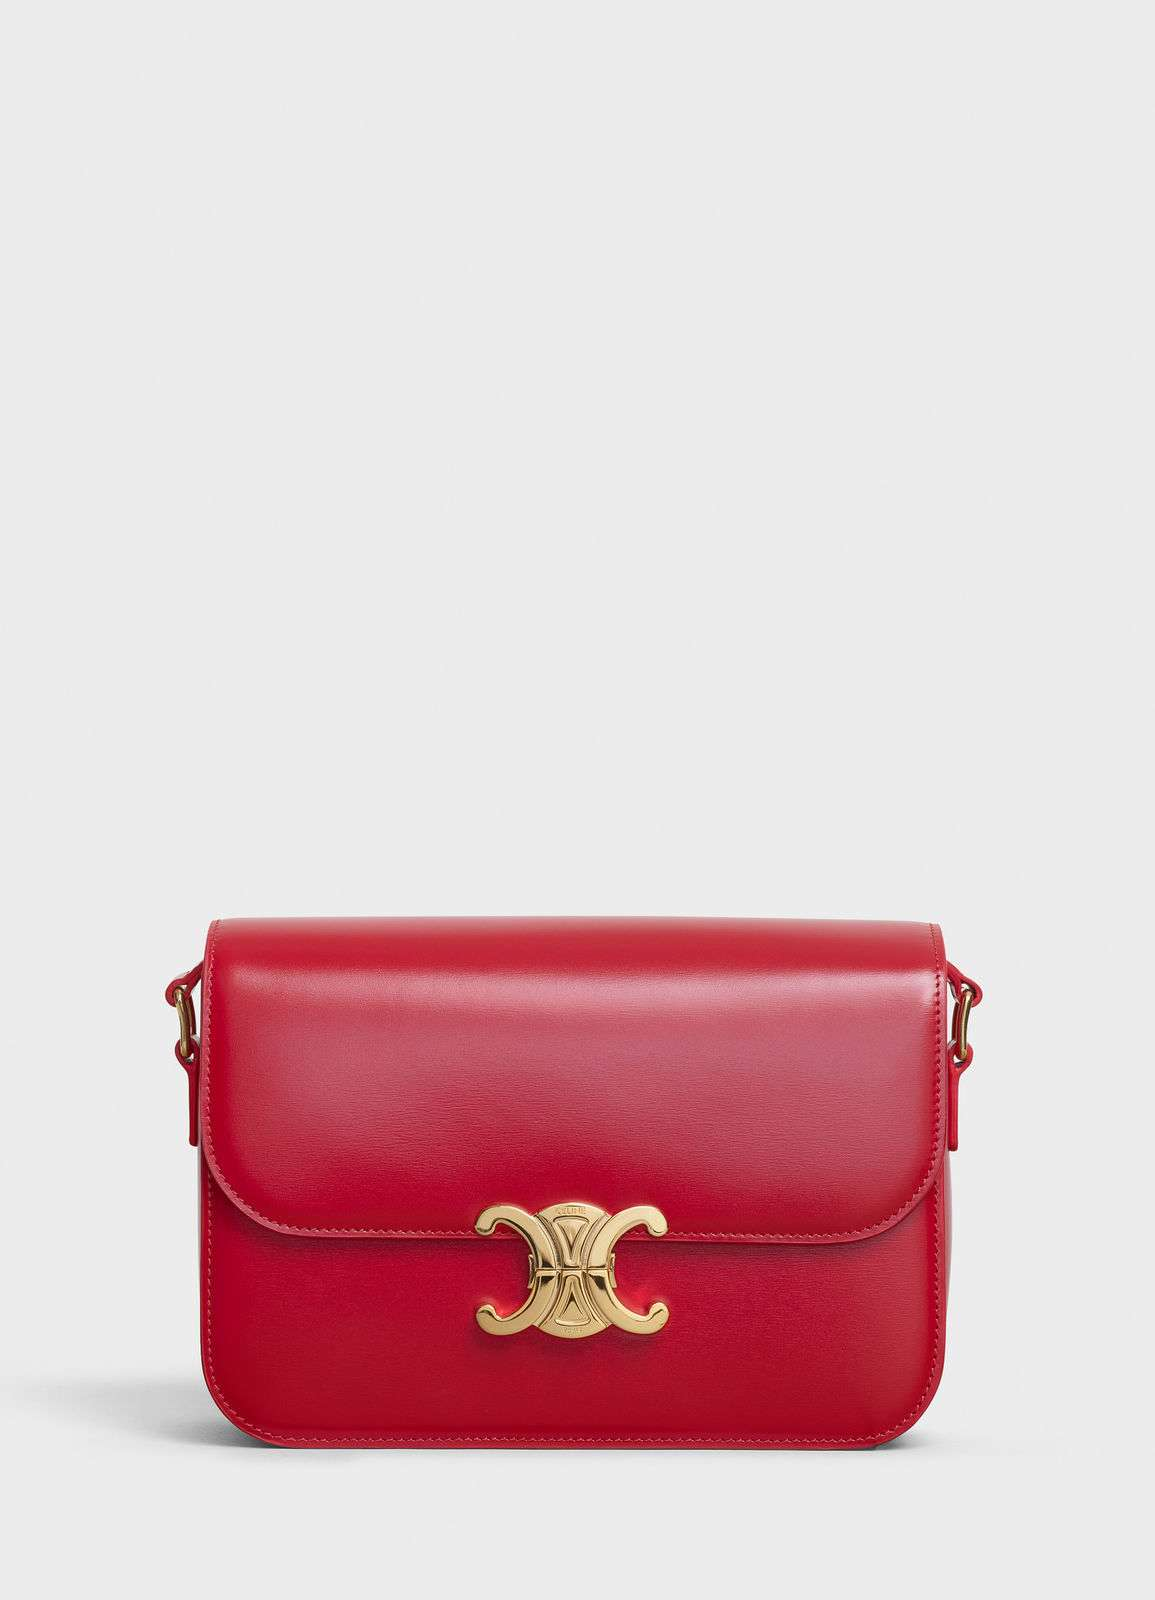 CELINE MEDIUM TRIOMPHE BAG IN SHINY CALFSKIN CL87363 RED